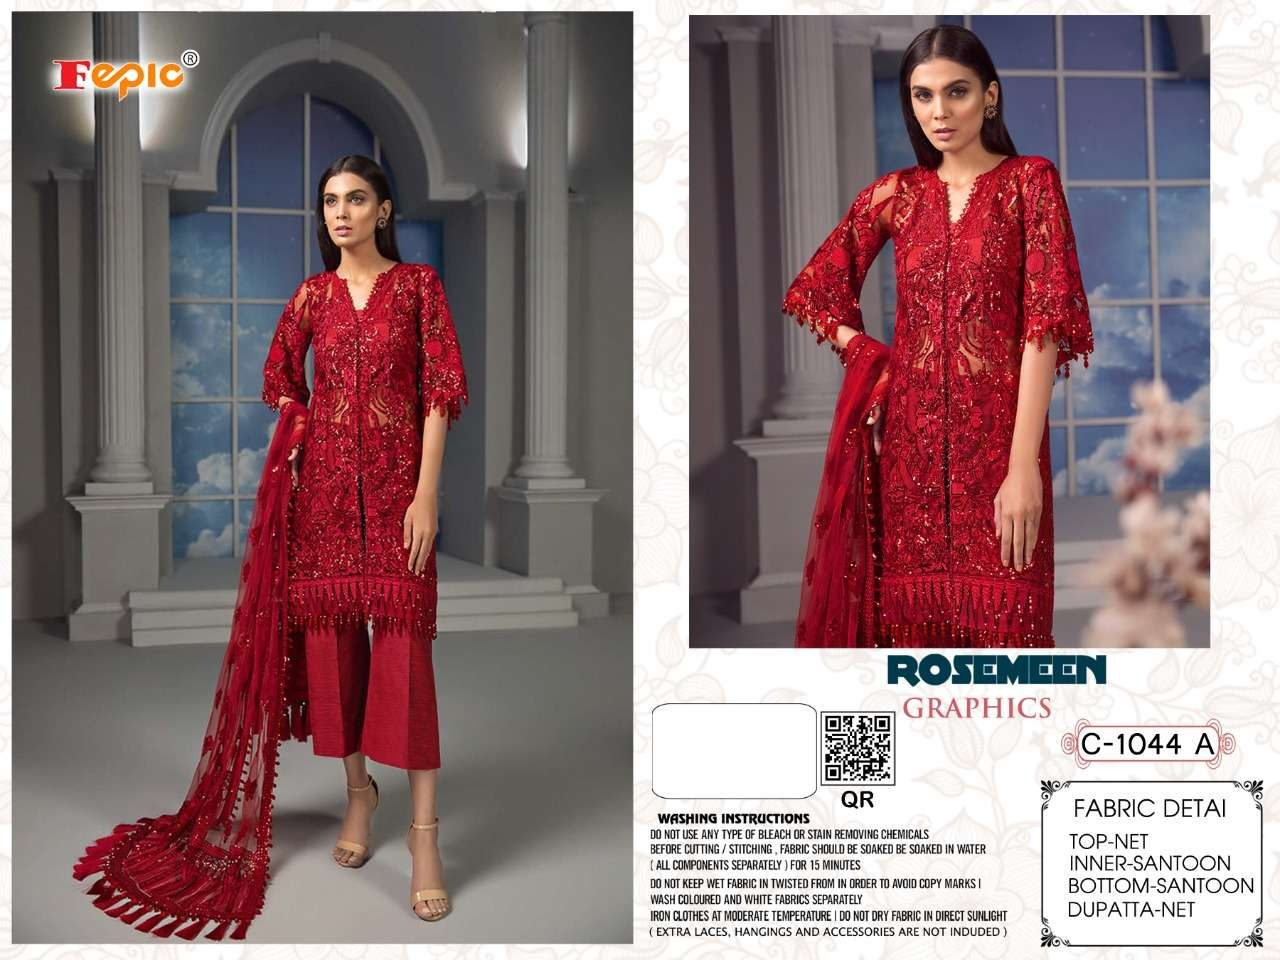 FEPIC ROSEMEEN GRAPHIC 1044 A